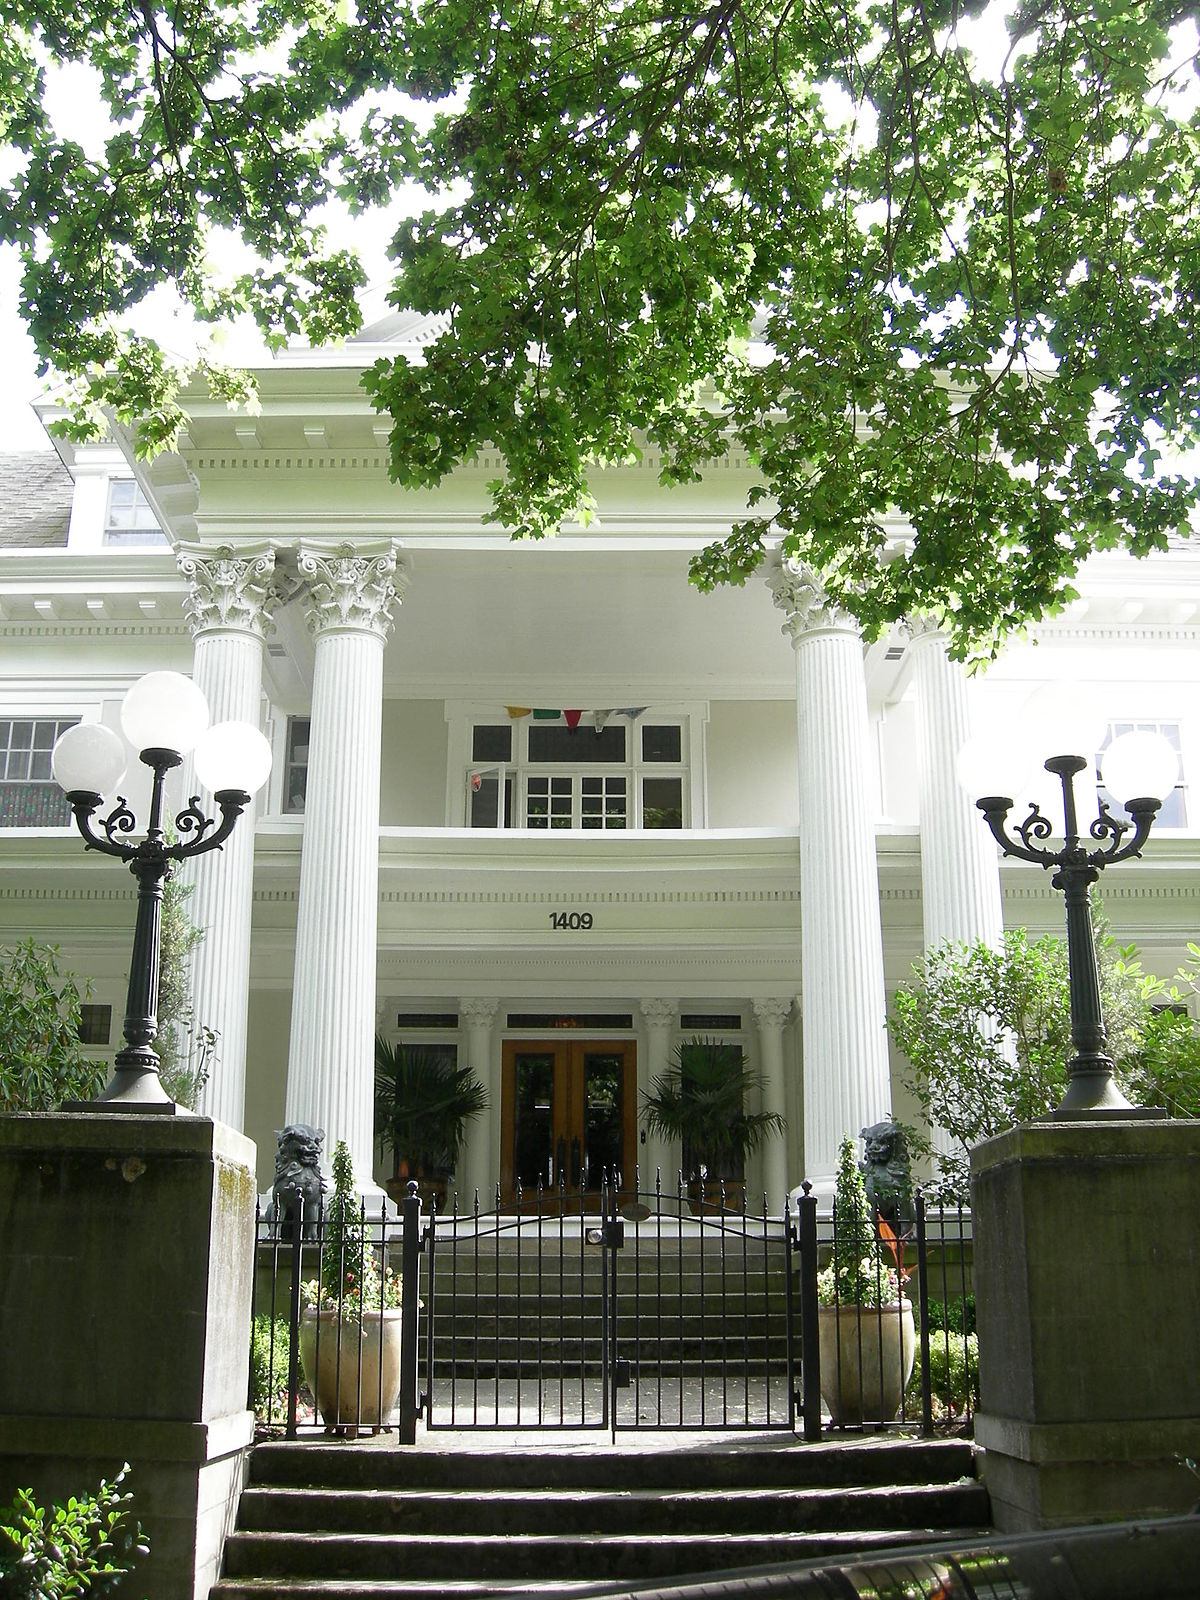 A frontal view of the estate highlighting its grand white columns and entryway. The original architect, Frederick Sexton, was known for creating lavish residences: much of what attracted George Parker to buy the home.